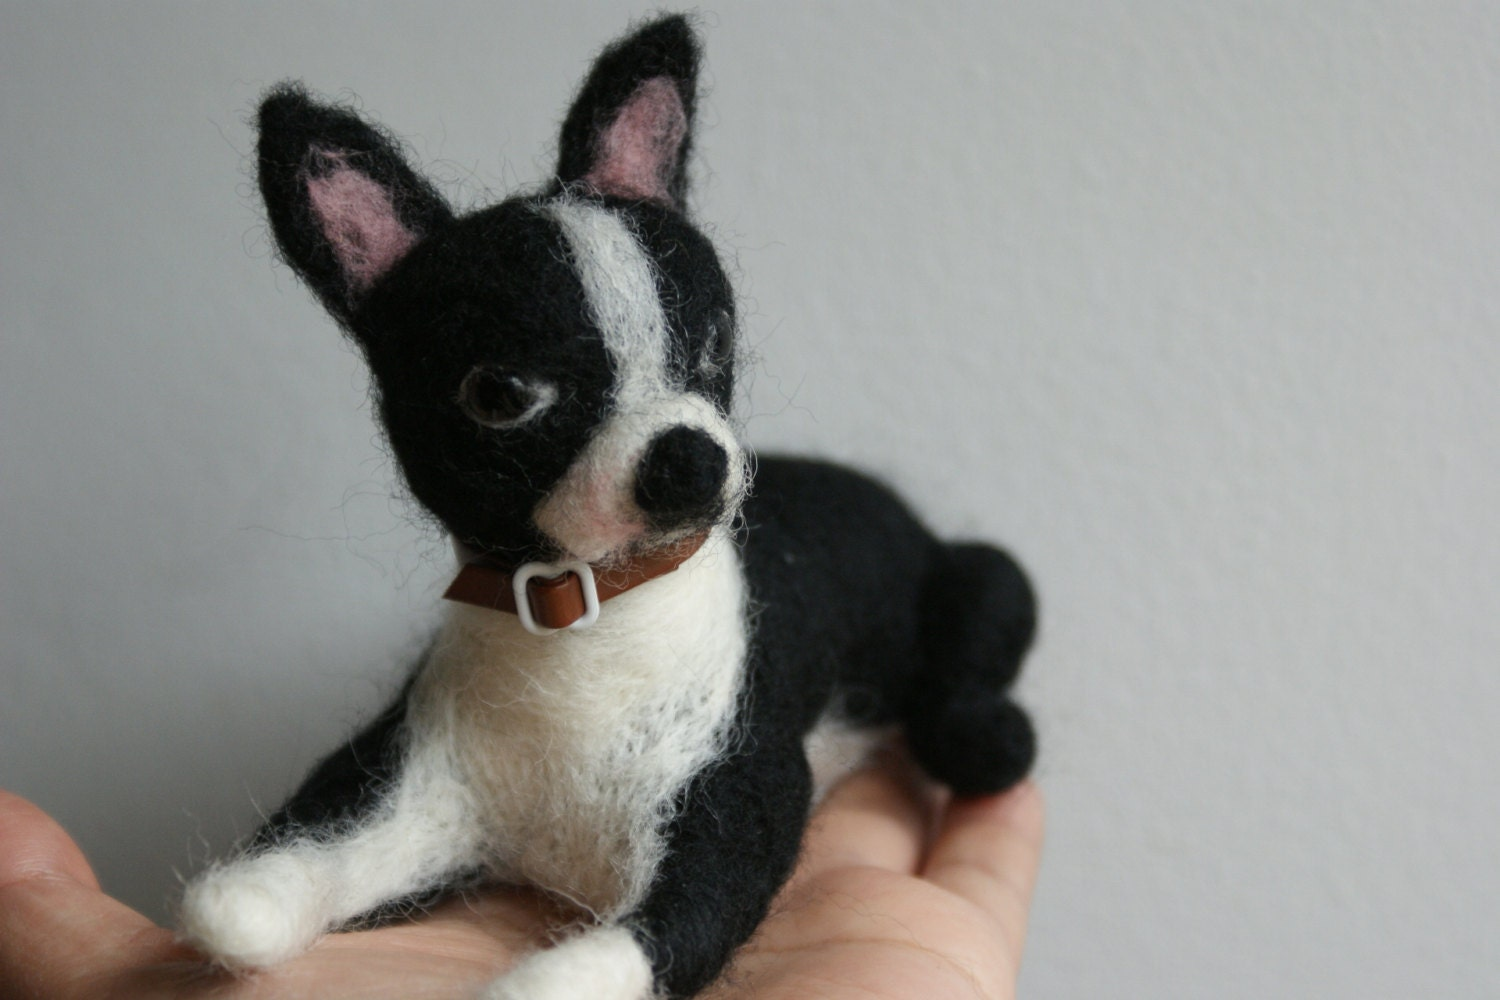 Ooak Needle Felted Black And White Boston Terrier By Kom2c